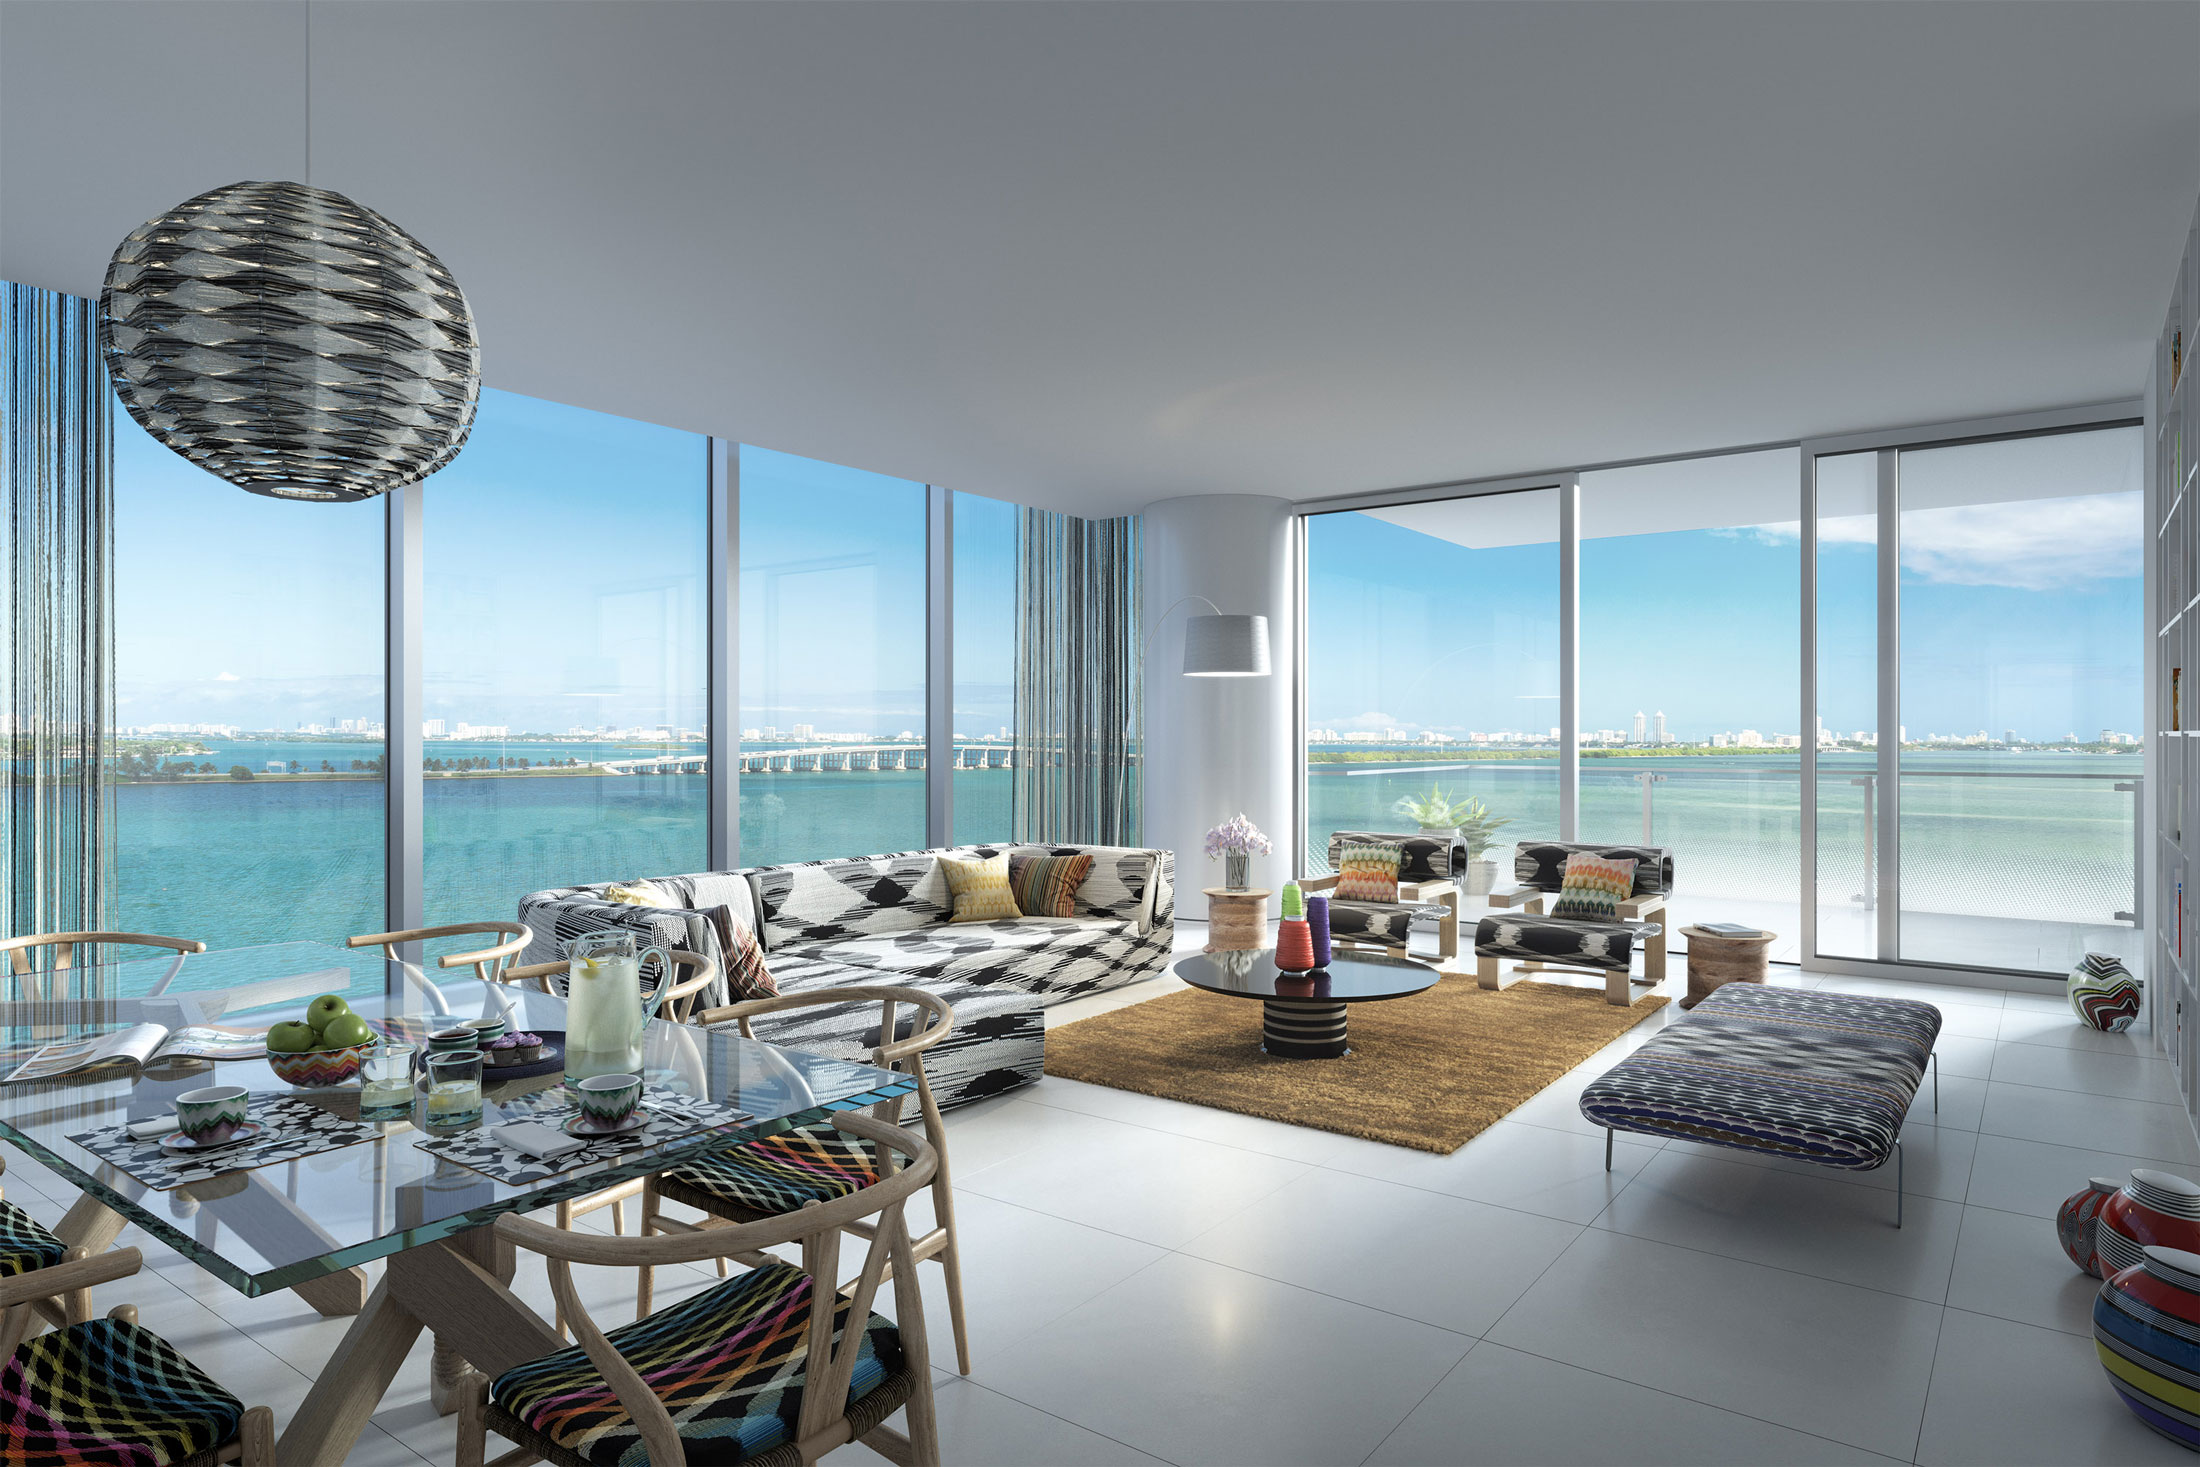 Architectural Rendering of the interior of the Missoni Baia project located in Miami, Florida